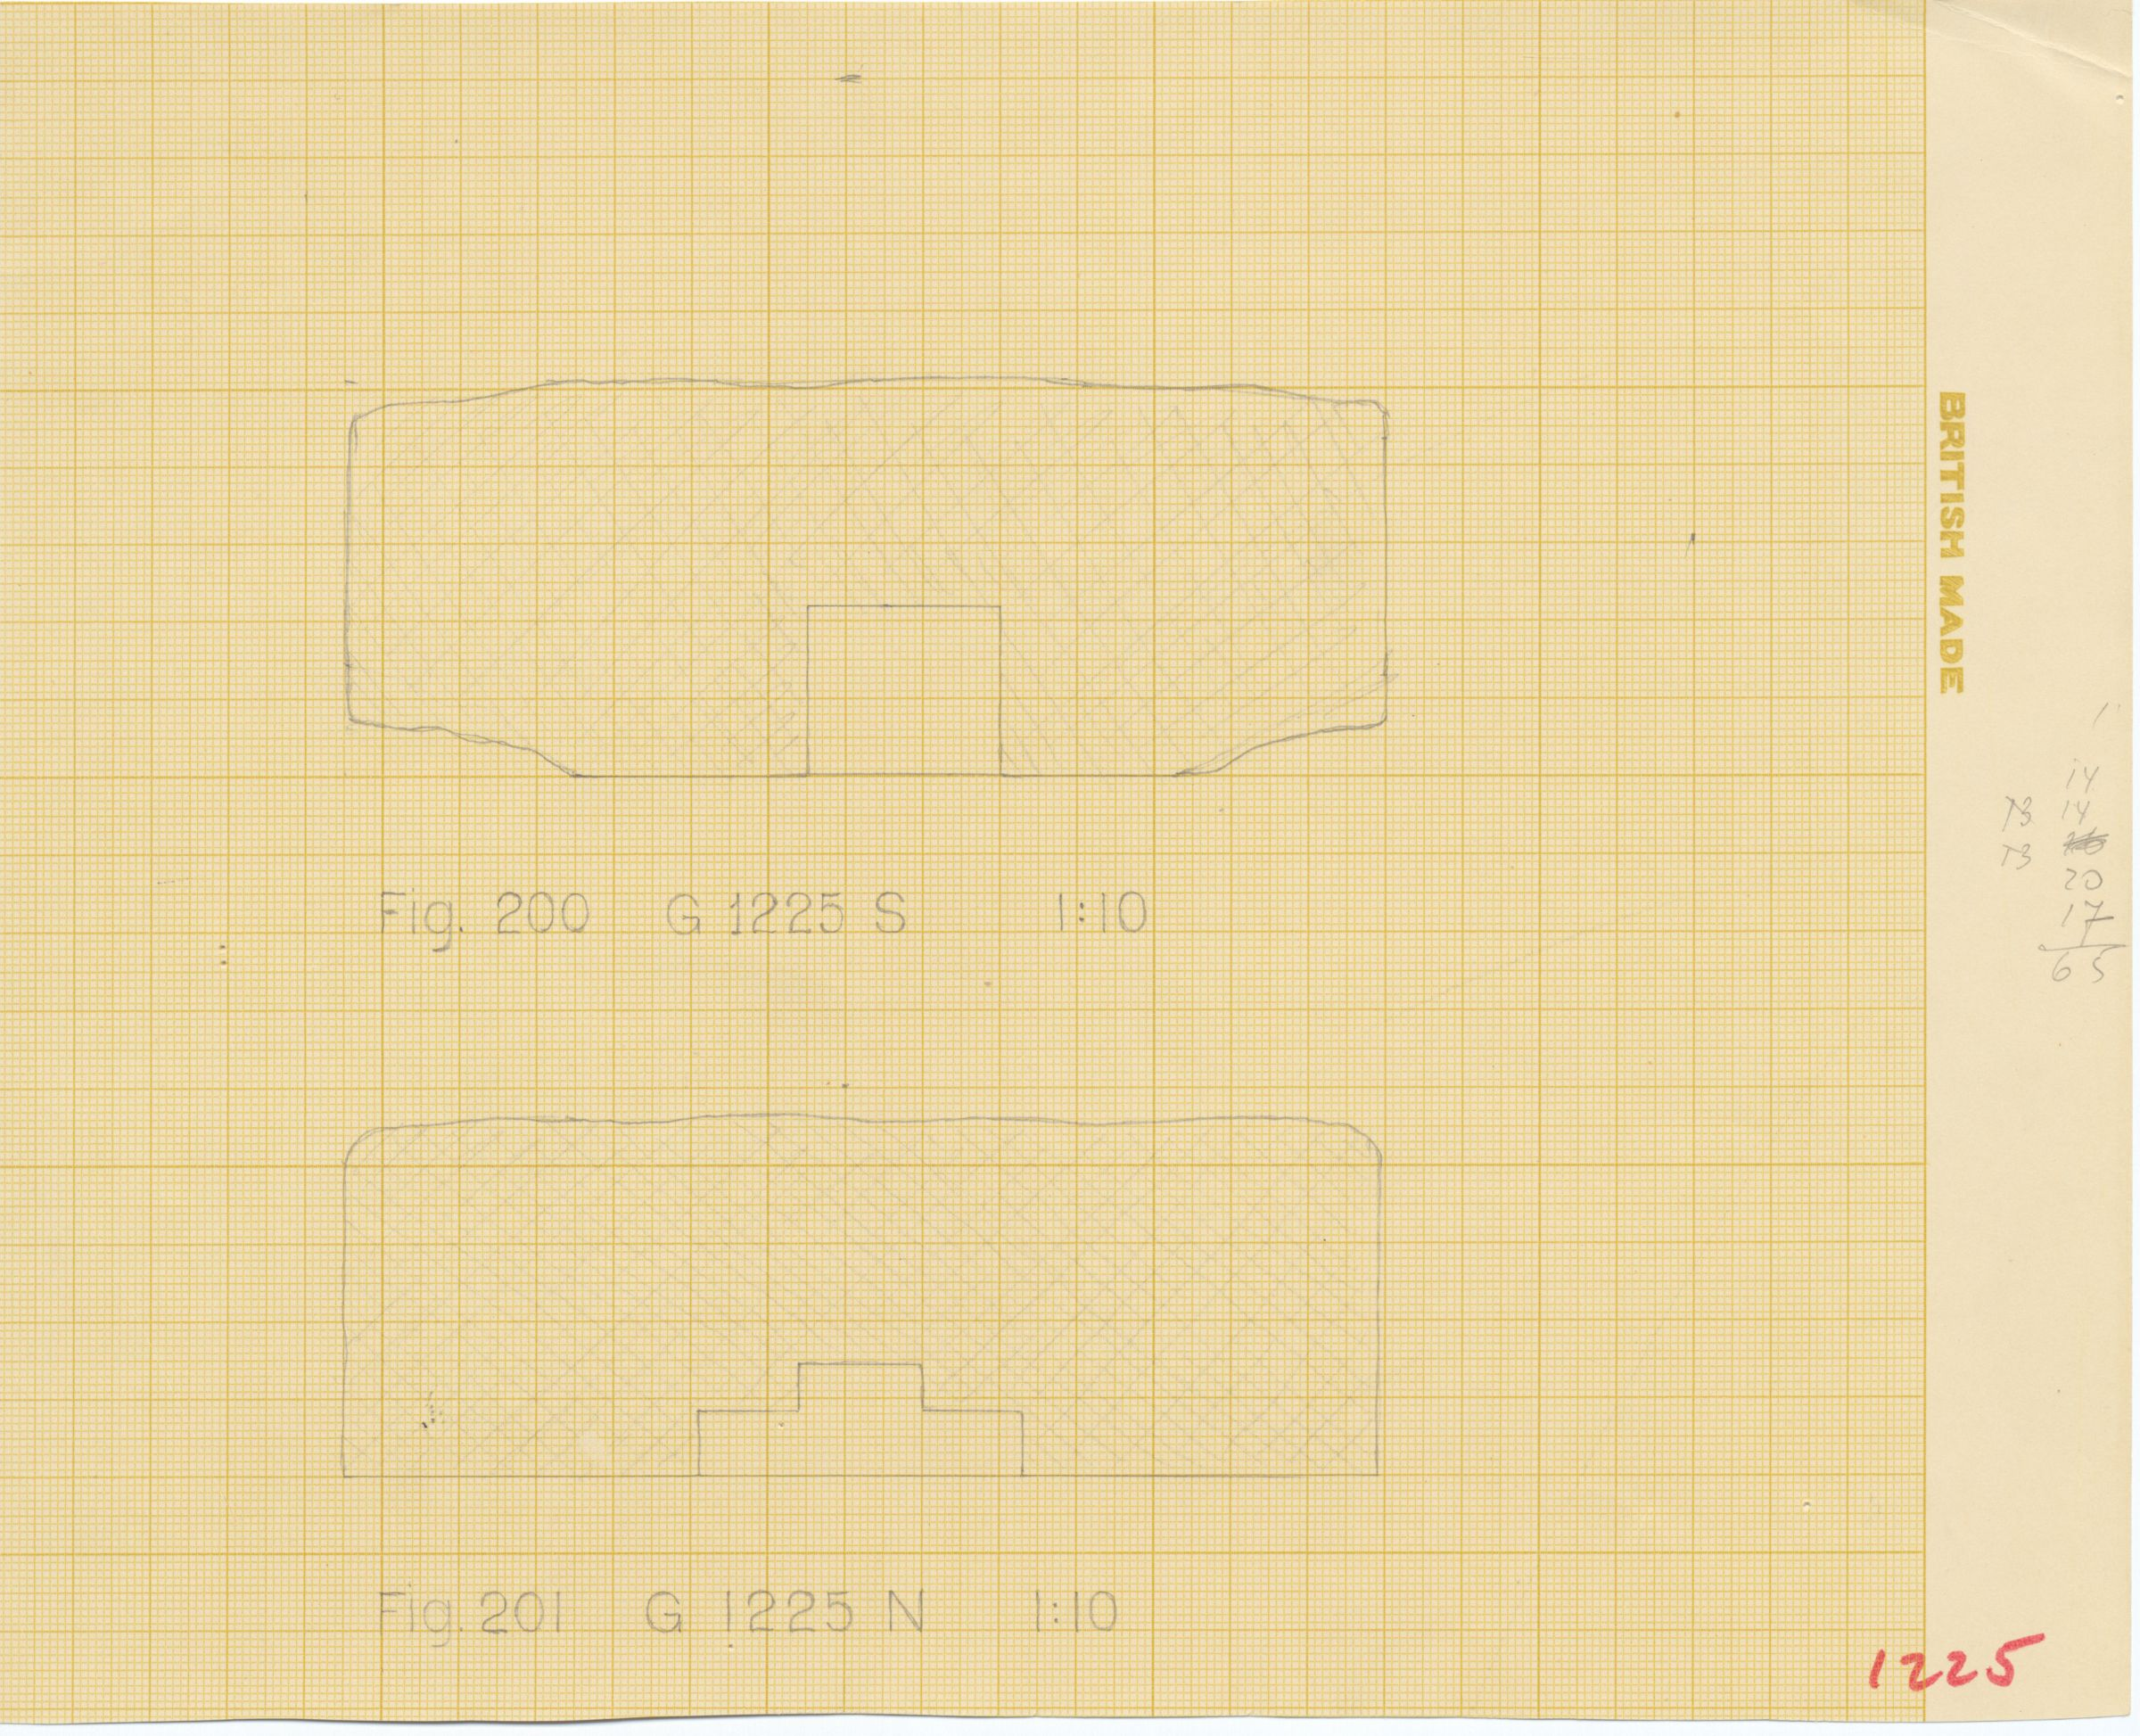 Maps and plans: G 1225, Plan of north and south niches (north niche = niche of G 1225-Annex chapel)